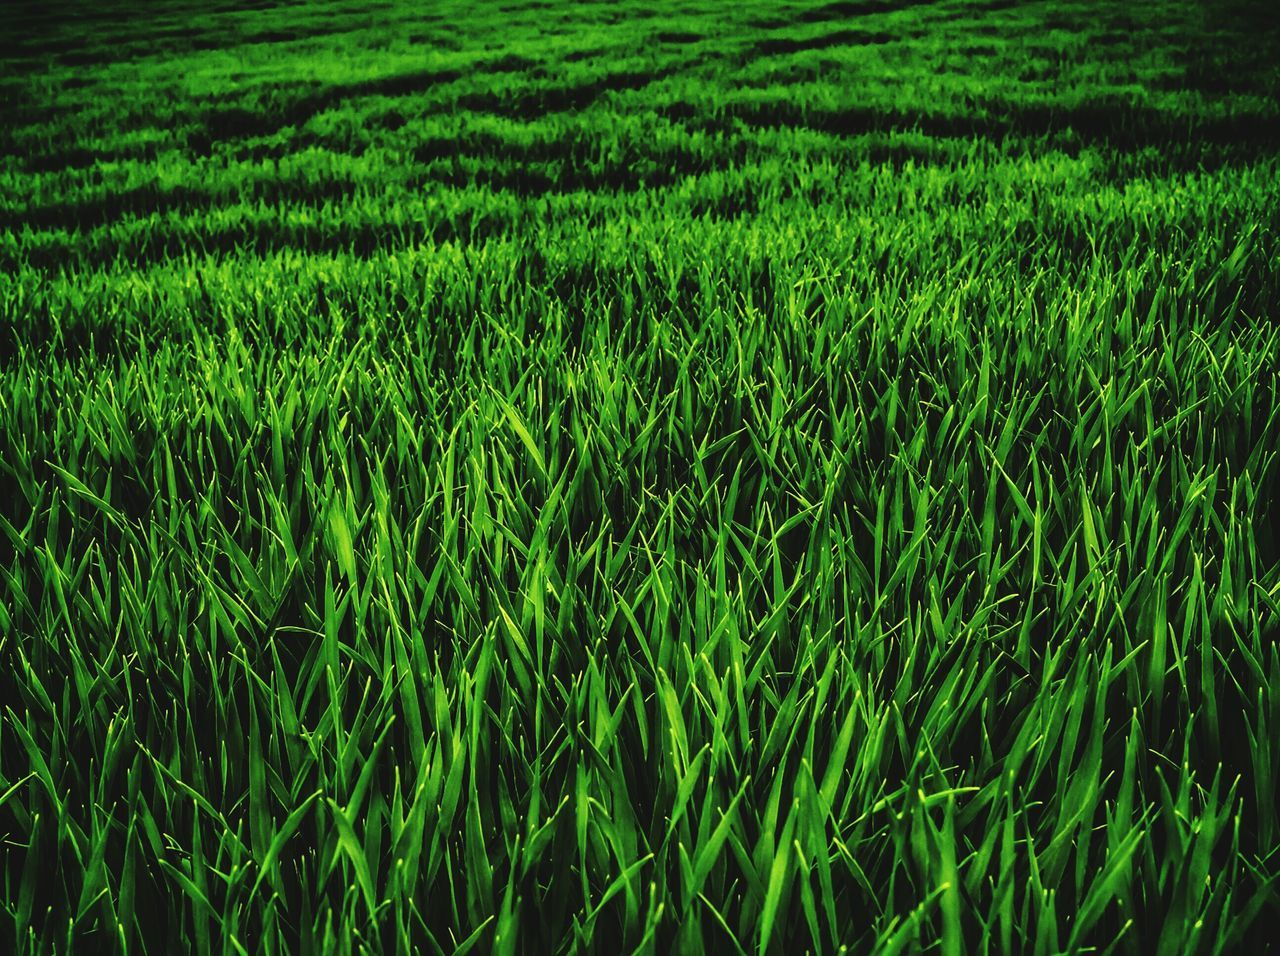 agriculture, field, growth, nature, green color, farm, grass, cereal plant, crop, cultivated land, rice - cereal plant, no people, rice paddy, green, rural scene, beauty in nature, tranquility, landscape, day, wheat, backgrounds, outdoors, ear of wheat, scenics, rice, plant, full frame, freshness